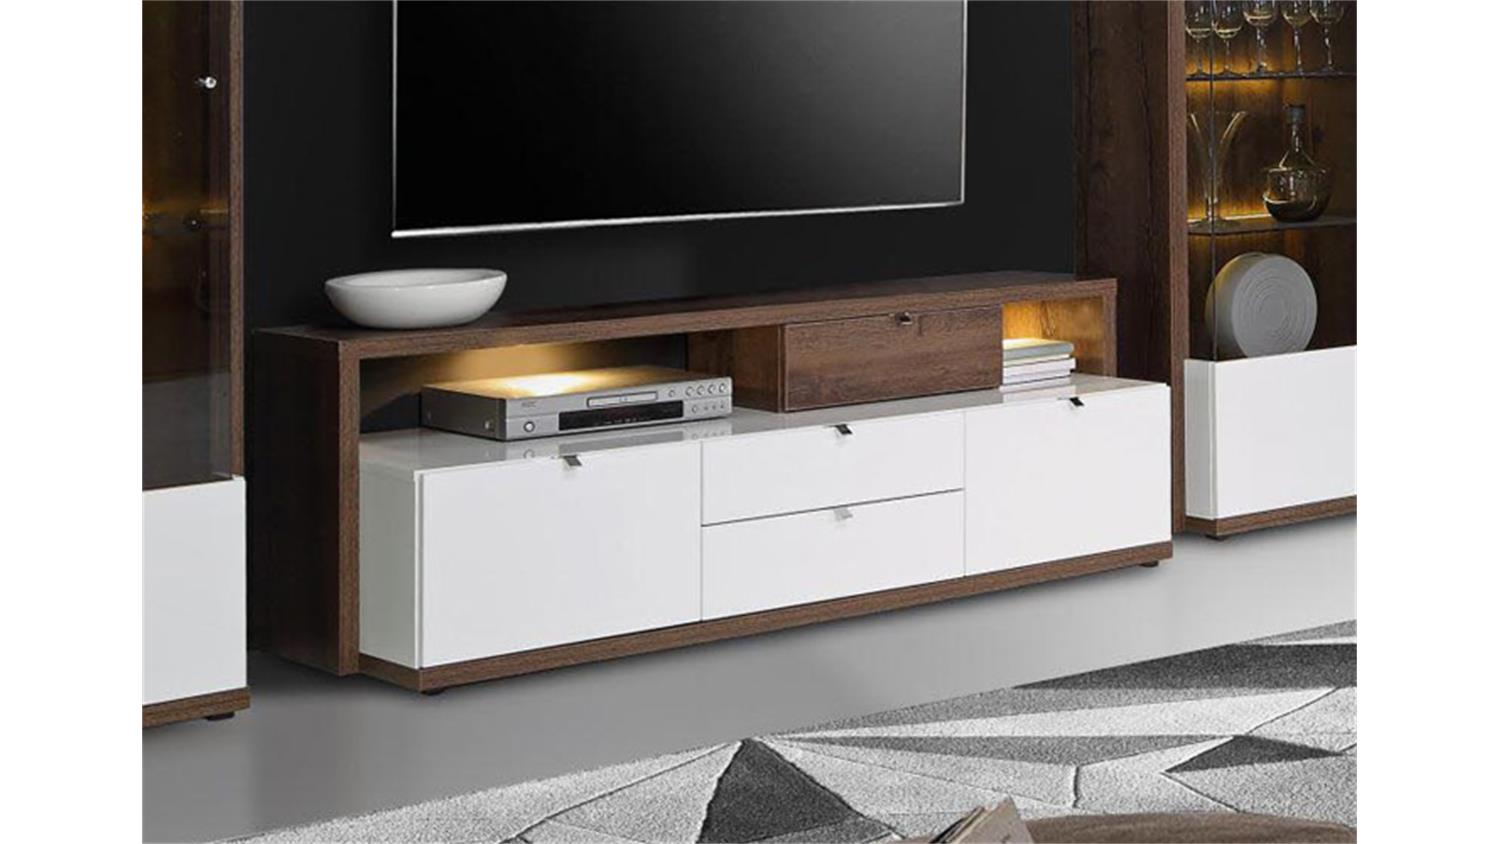 tv board alcano lowboard wei hochglanz schlammeiche. Black Bedroom Furniture Sets. Home Design Ideas